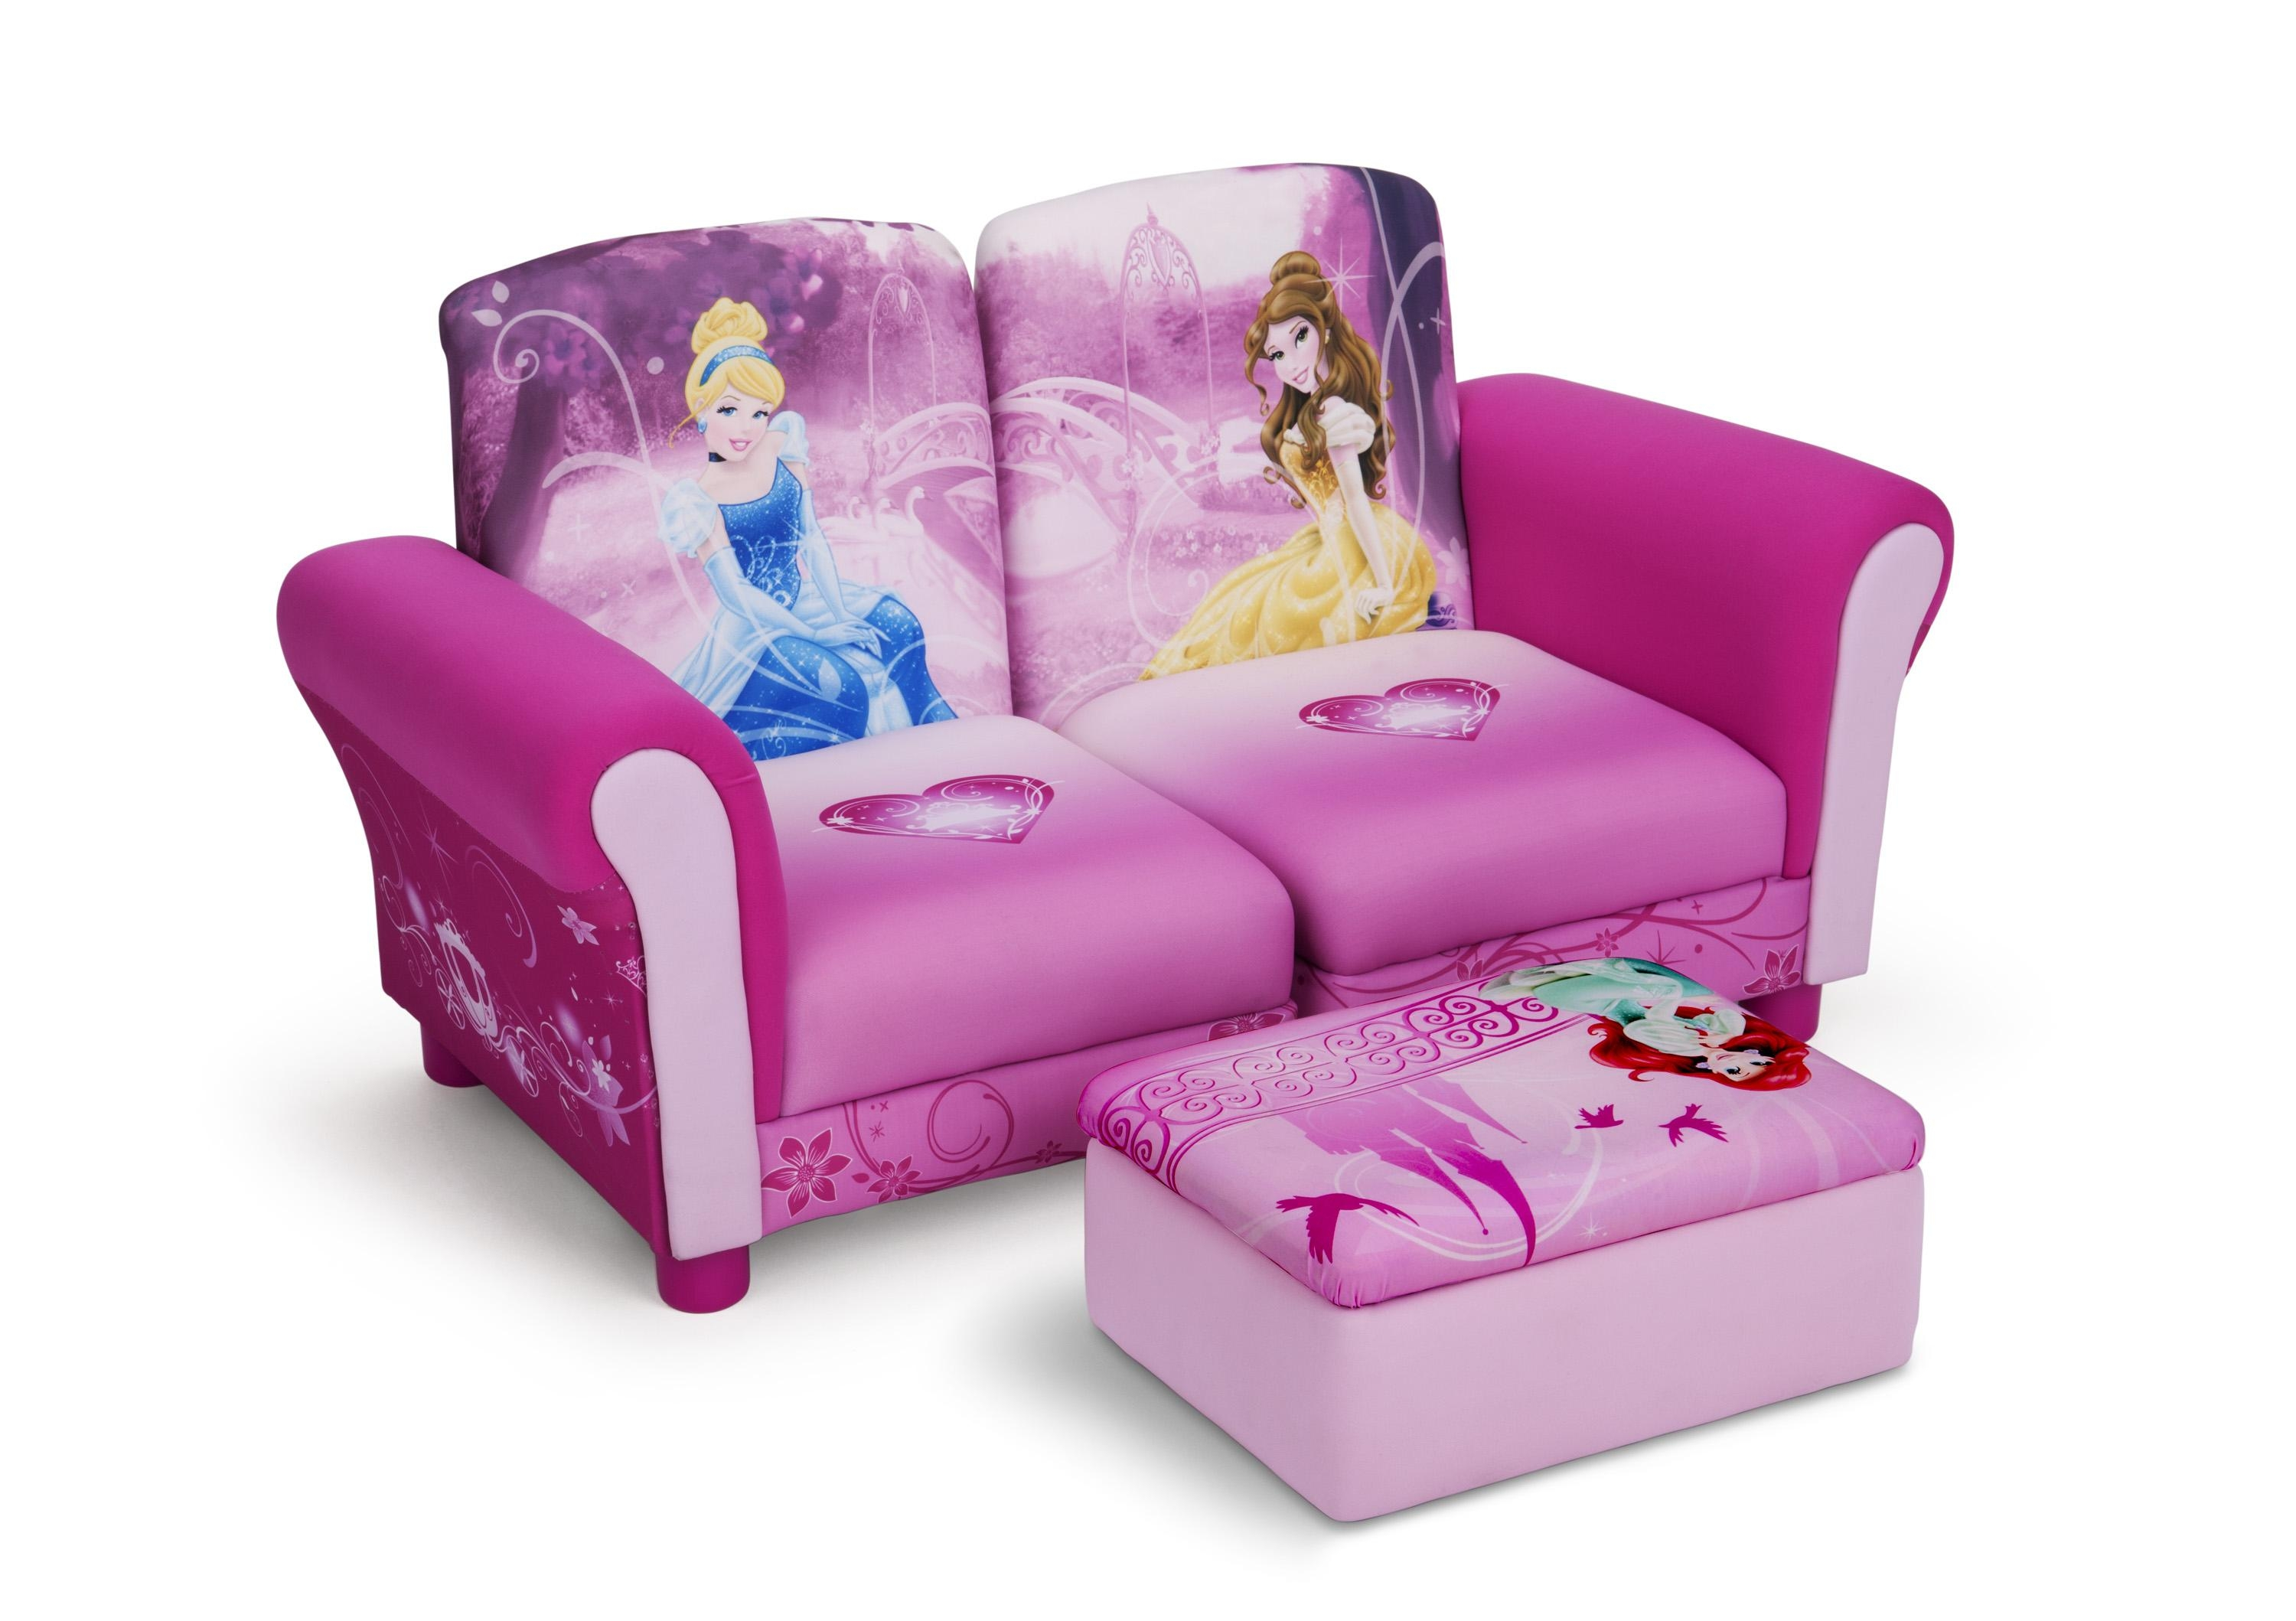 Sofas Center : 91F6A372B834 1 Sofa Chair Fordlerdlers Disney Within Disney Sofa Chairs (Image 19 of 20)